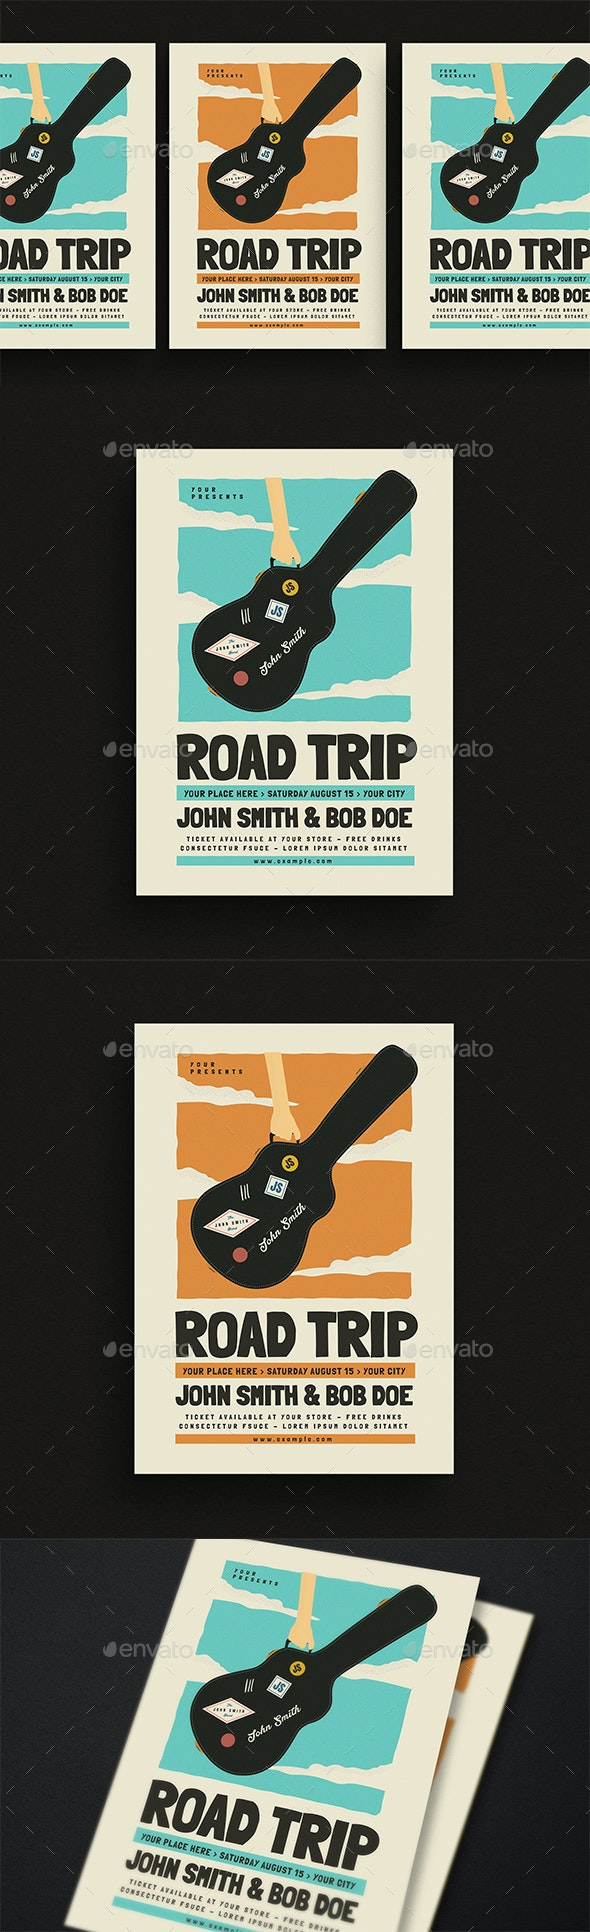 Road Trip Gigs Event Flyer - Events Flyers